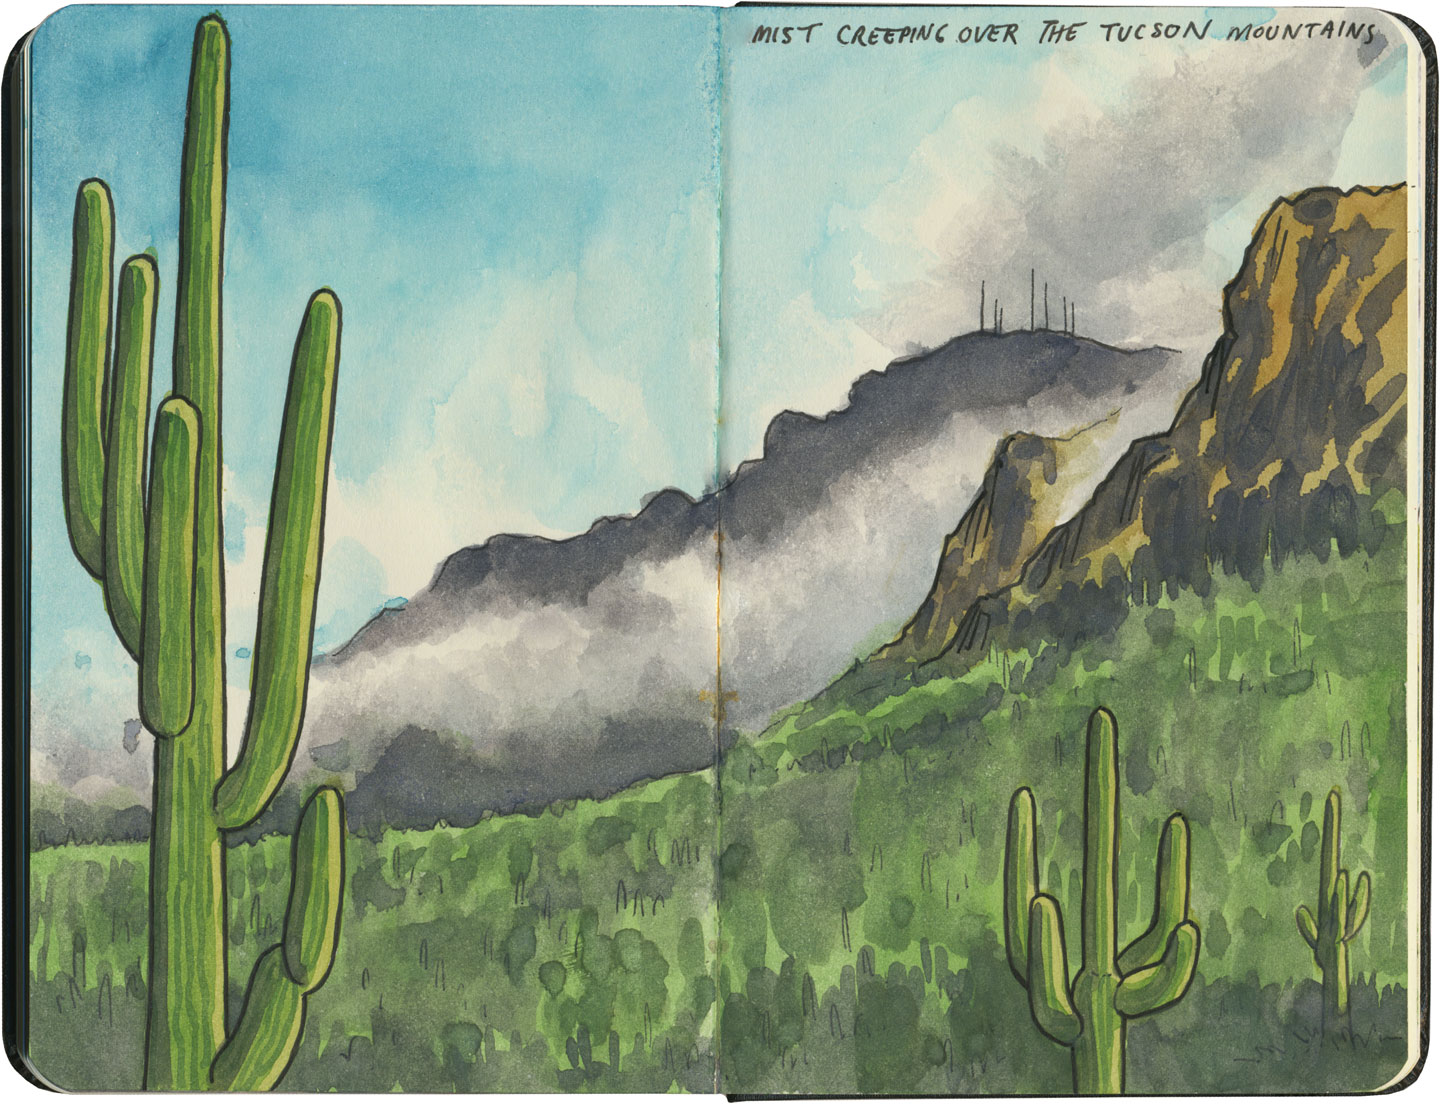 Saguaro National Park sketch by Chandler O'Leary